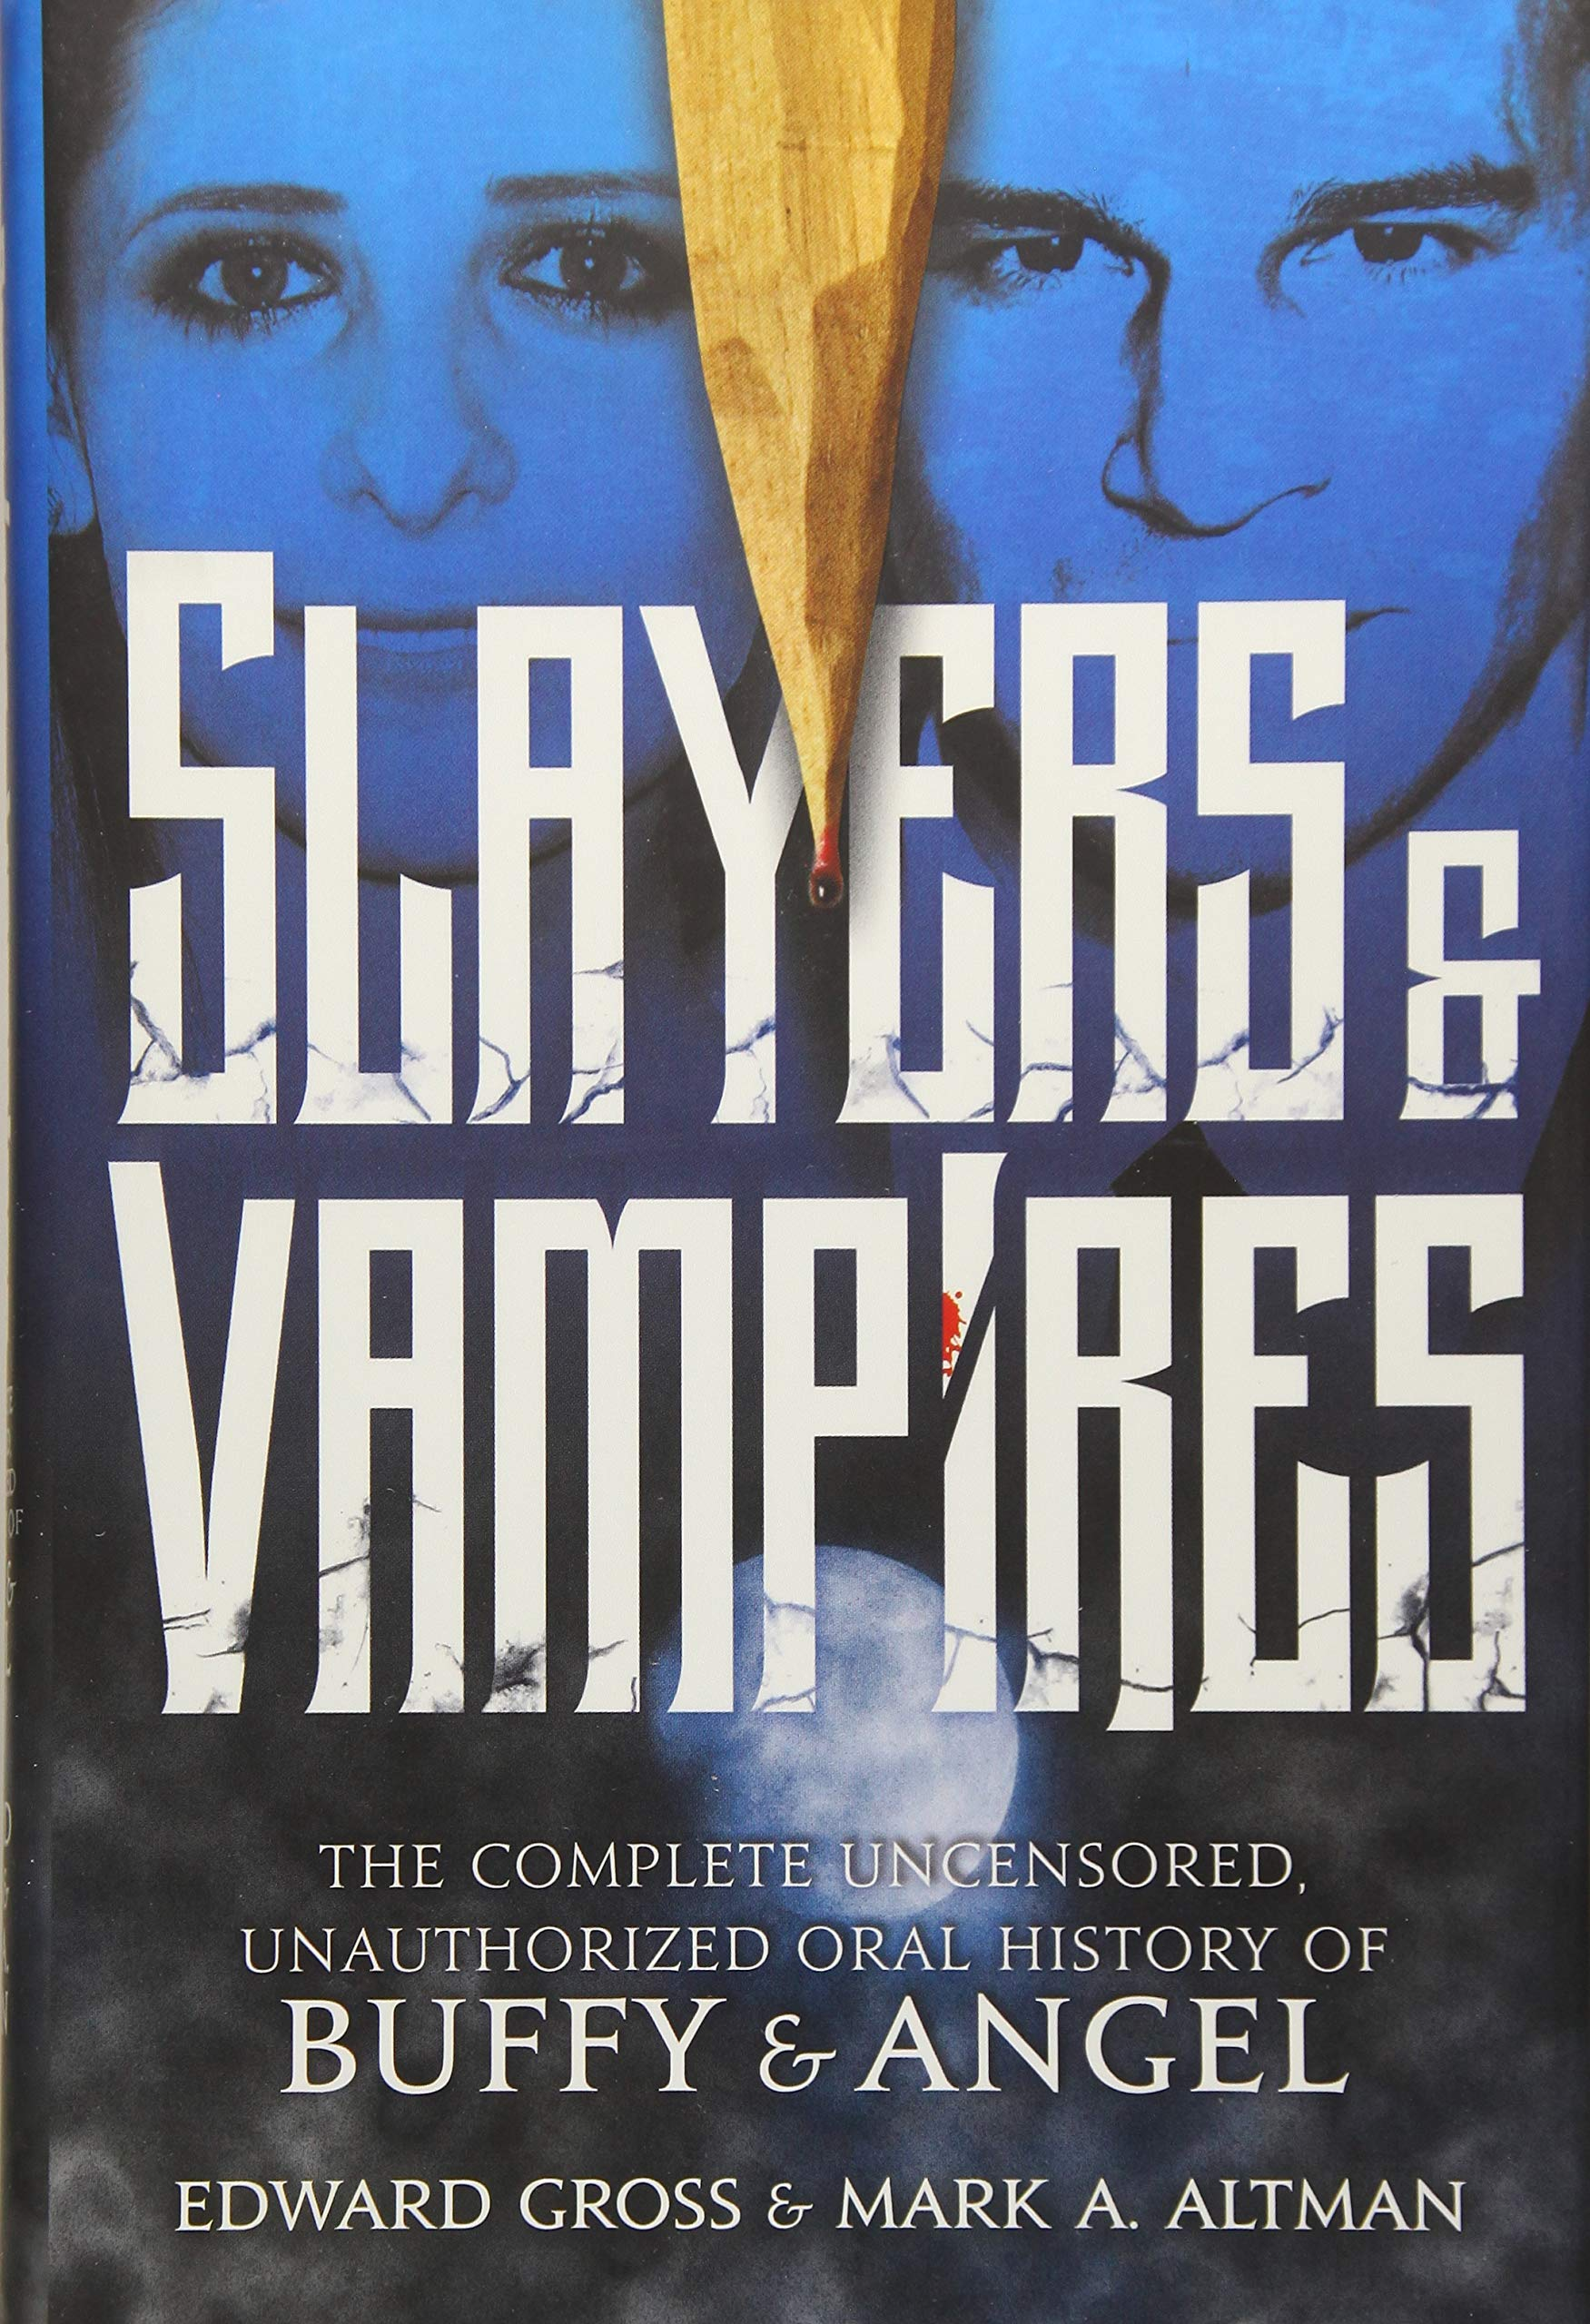 Slayers & Vampires: The Complete Uncensored, Unauthorized Oral History of  Buffy & Angel: Edward Gross, Mark A. Altman: 9781250128928: Amazon.com:  Books